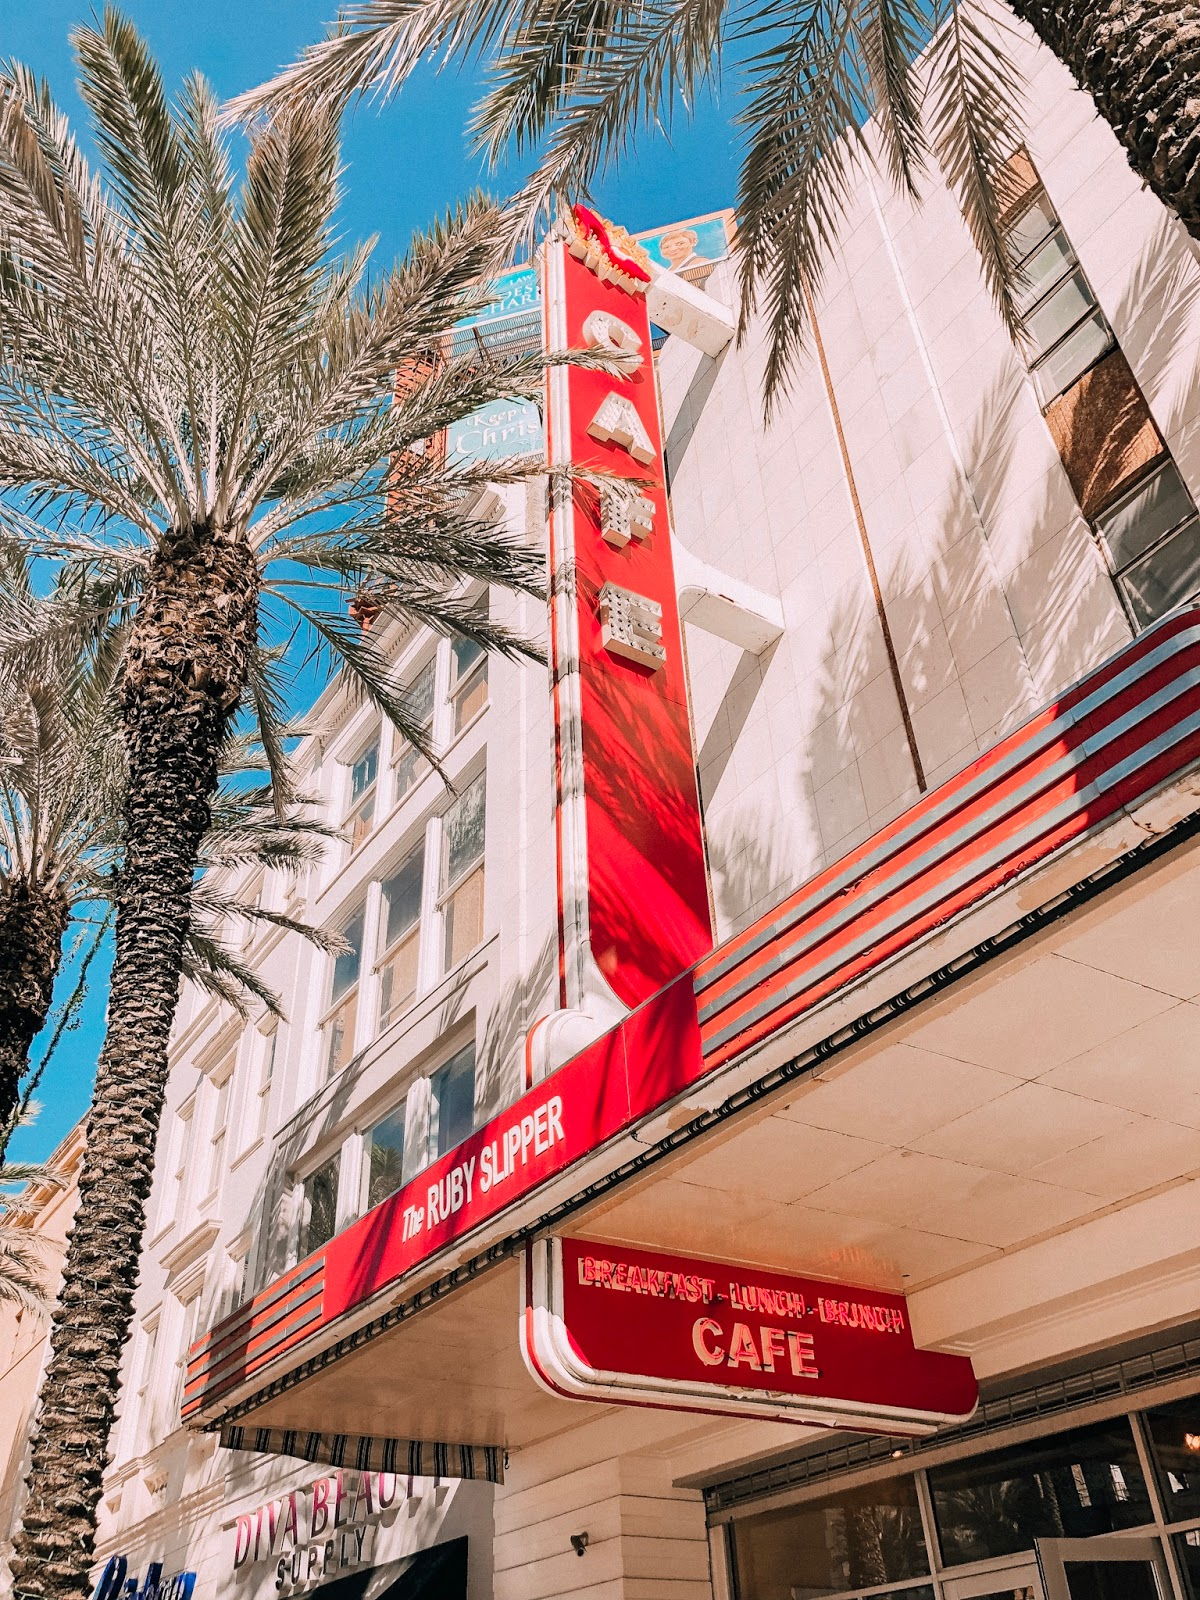 Outside shot of The Ruby Slipper Cafe on Canal Street in New Orleans